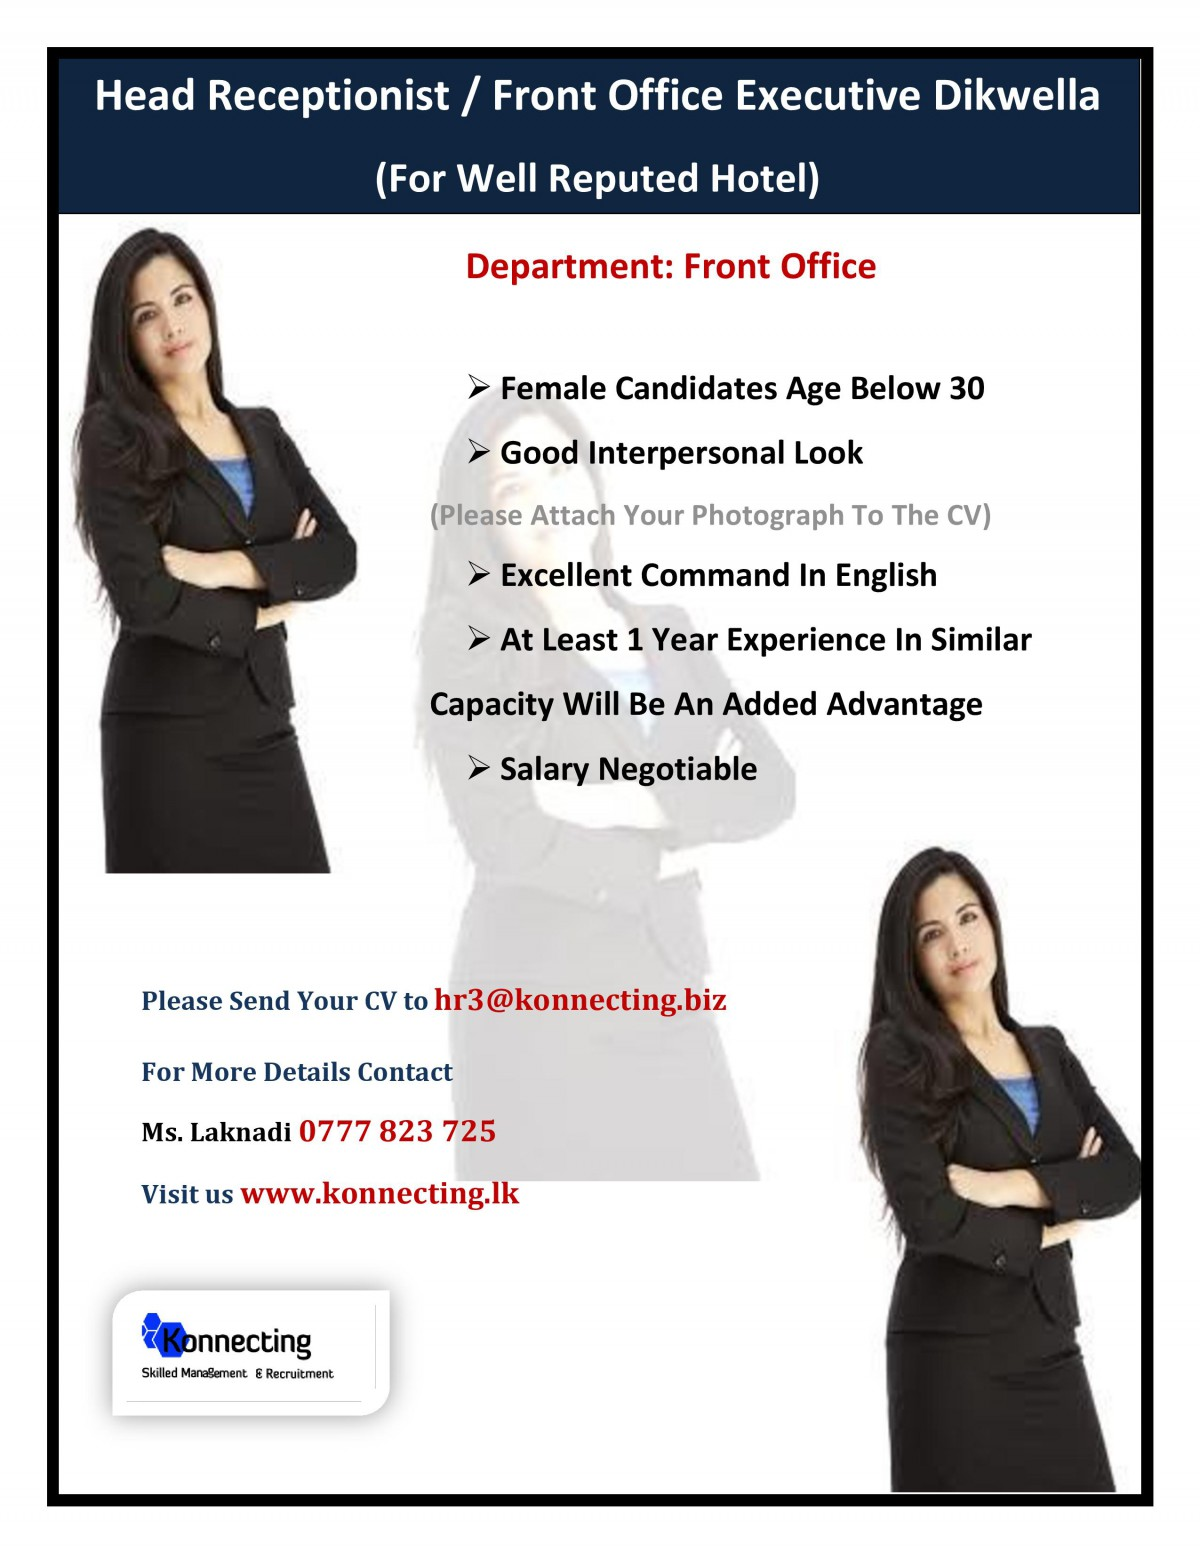 Head Receptionist / Front Office Hotel Executive